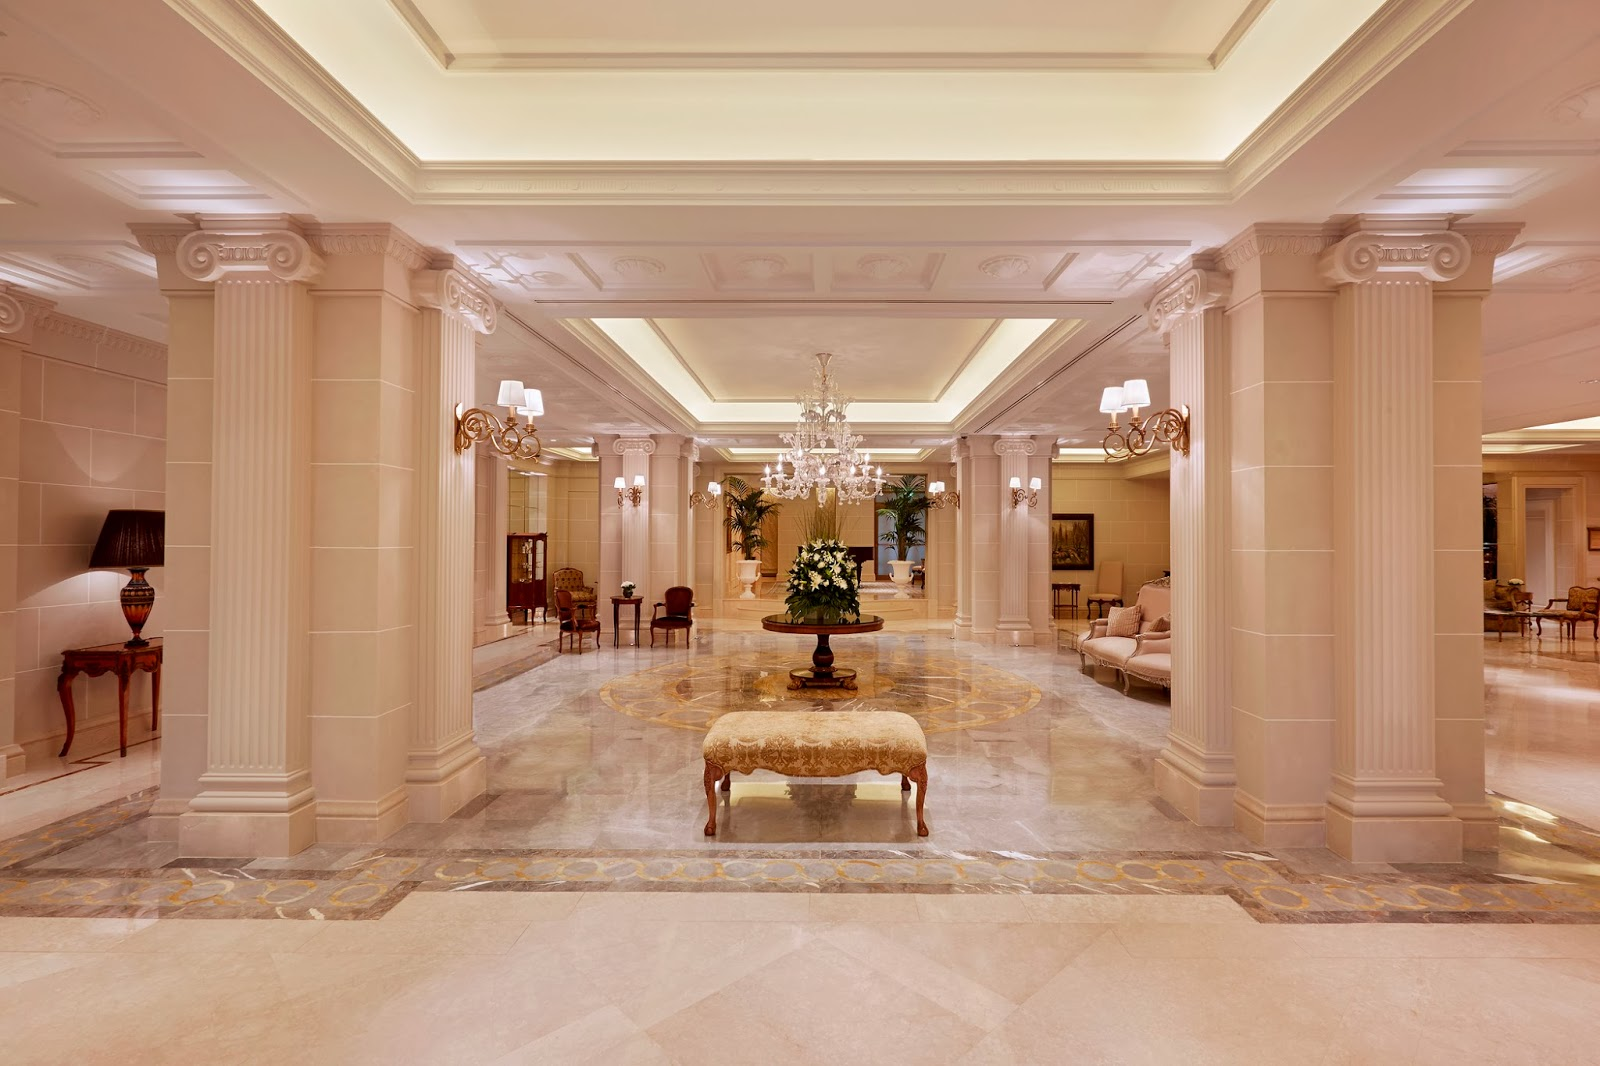 Passion for luxury luxurious king george athens for Hotel luxury